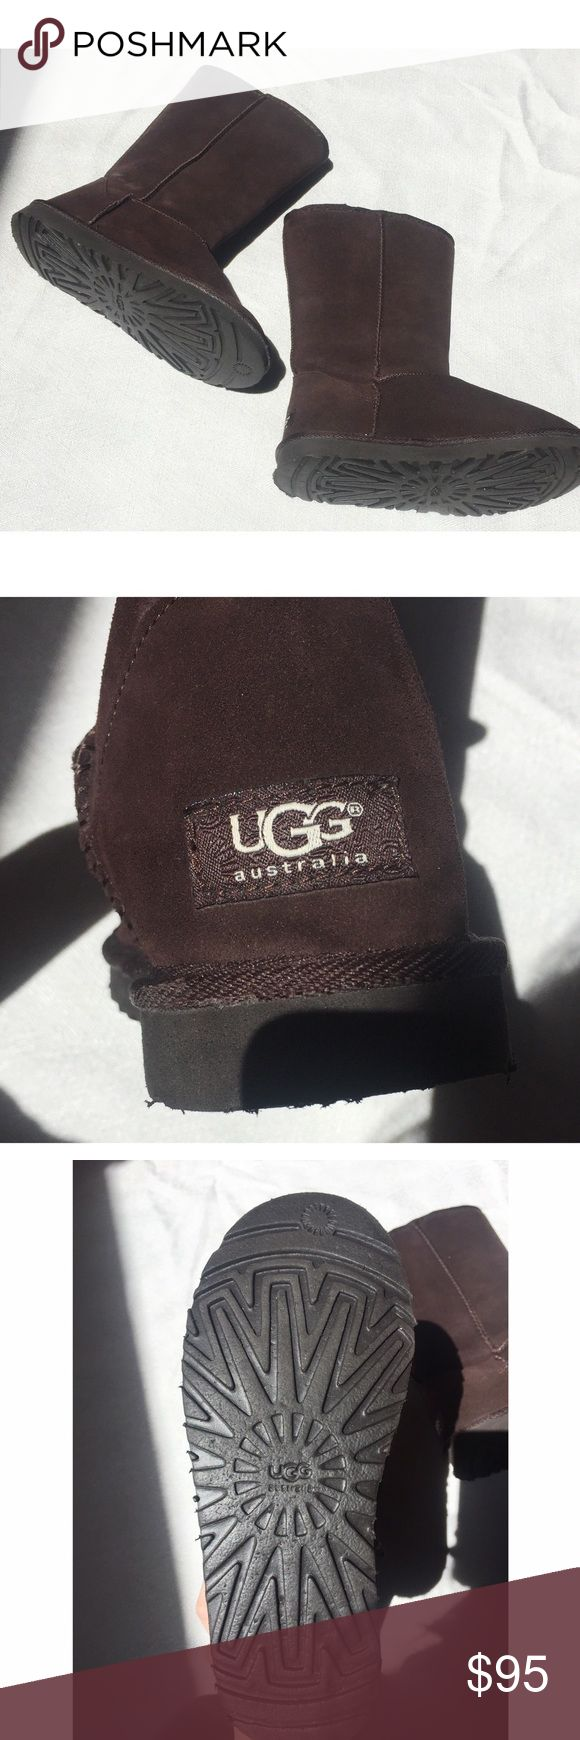 *BARELY WORN* Dark Brown Tall Ugg Boots These are dark brown authentic UGG boots. I have only worn them once and it wasn't in the snow. They are 12 inches from the very top to the very bottom. They are in amazing condition, the only problem area is a small opening which doesn't make a difference while it is worn that is pictured in the last photo. :) UGG Shoes Winter & Rain Boots